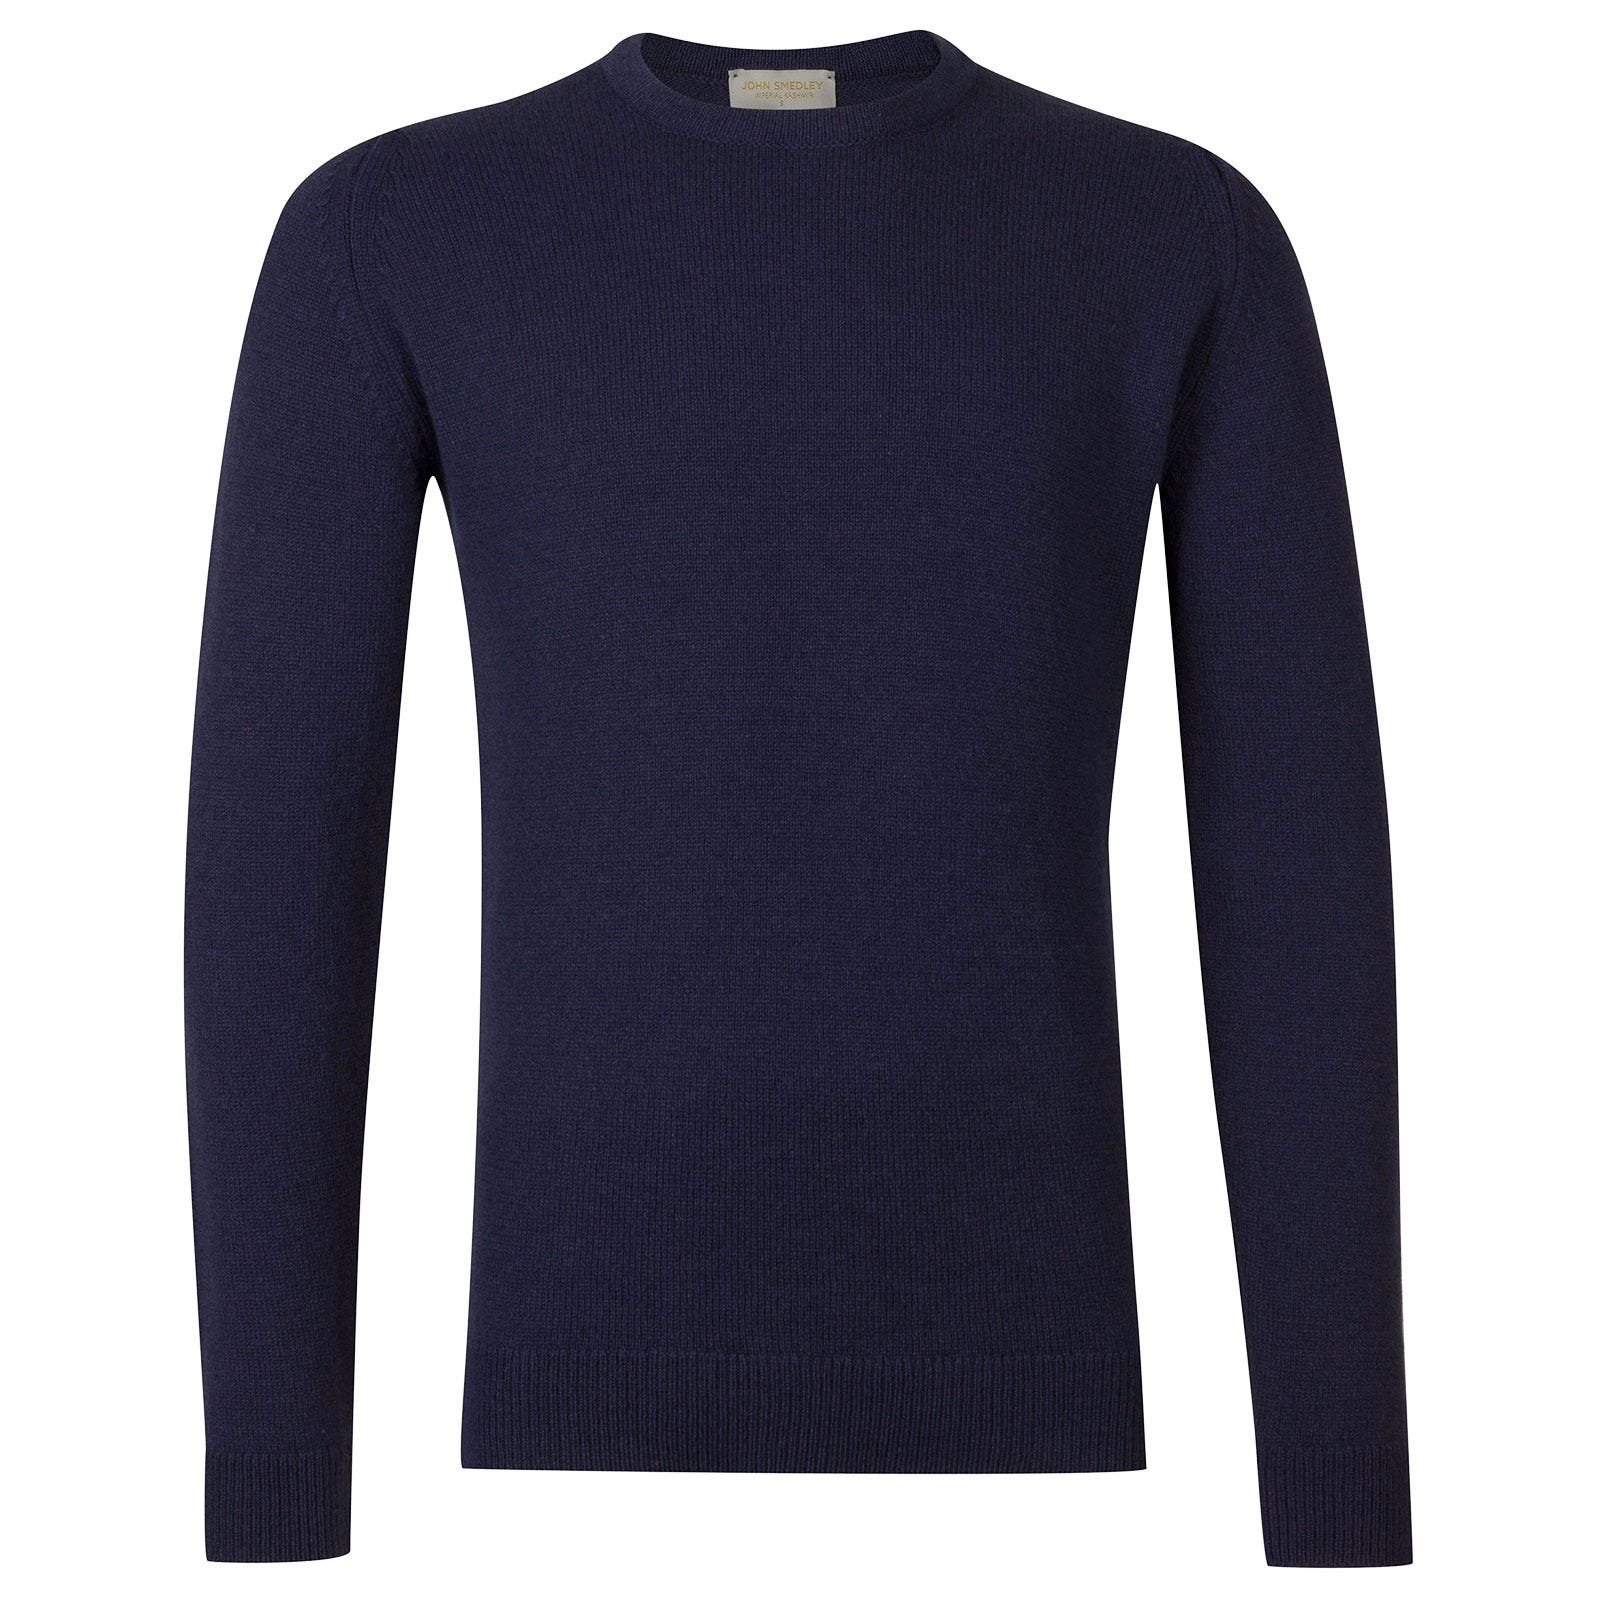 John Smedley Crowford Wool and Cashmere Pullover in Indigo-XL